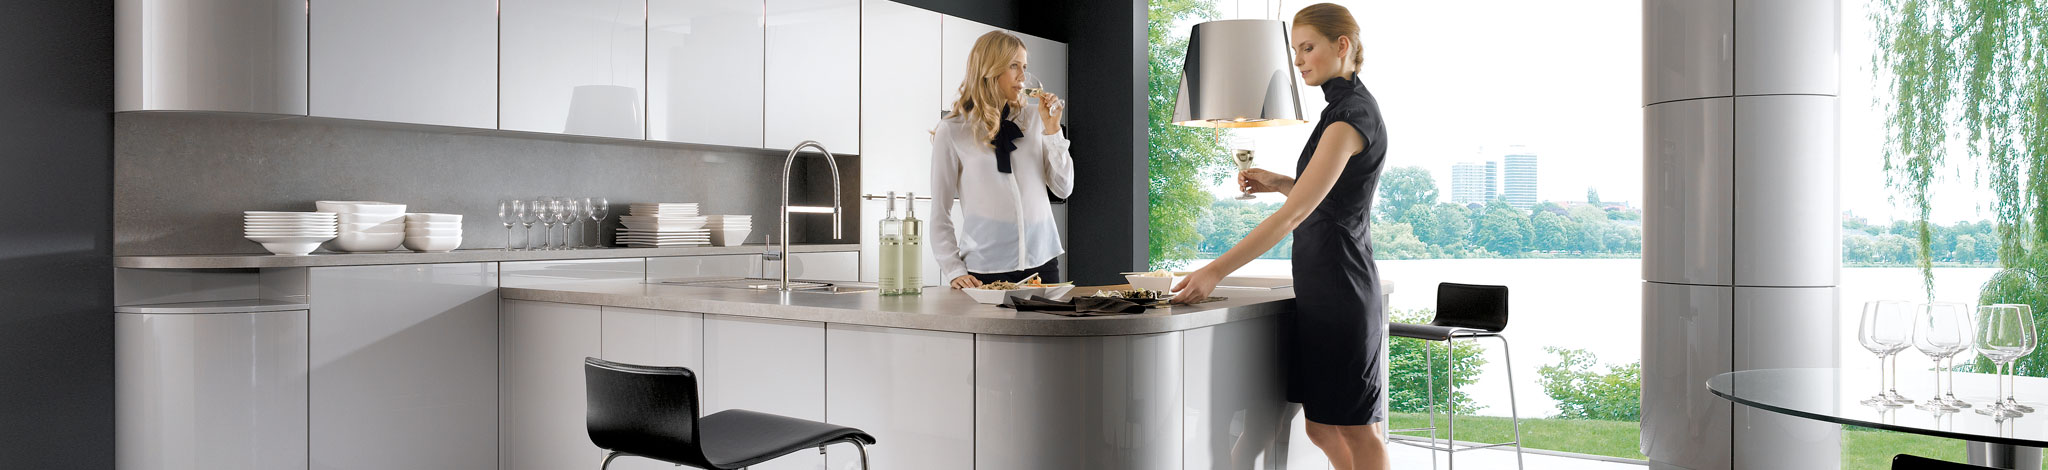 Schuller kitchens at Taps and Tubs